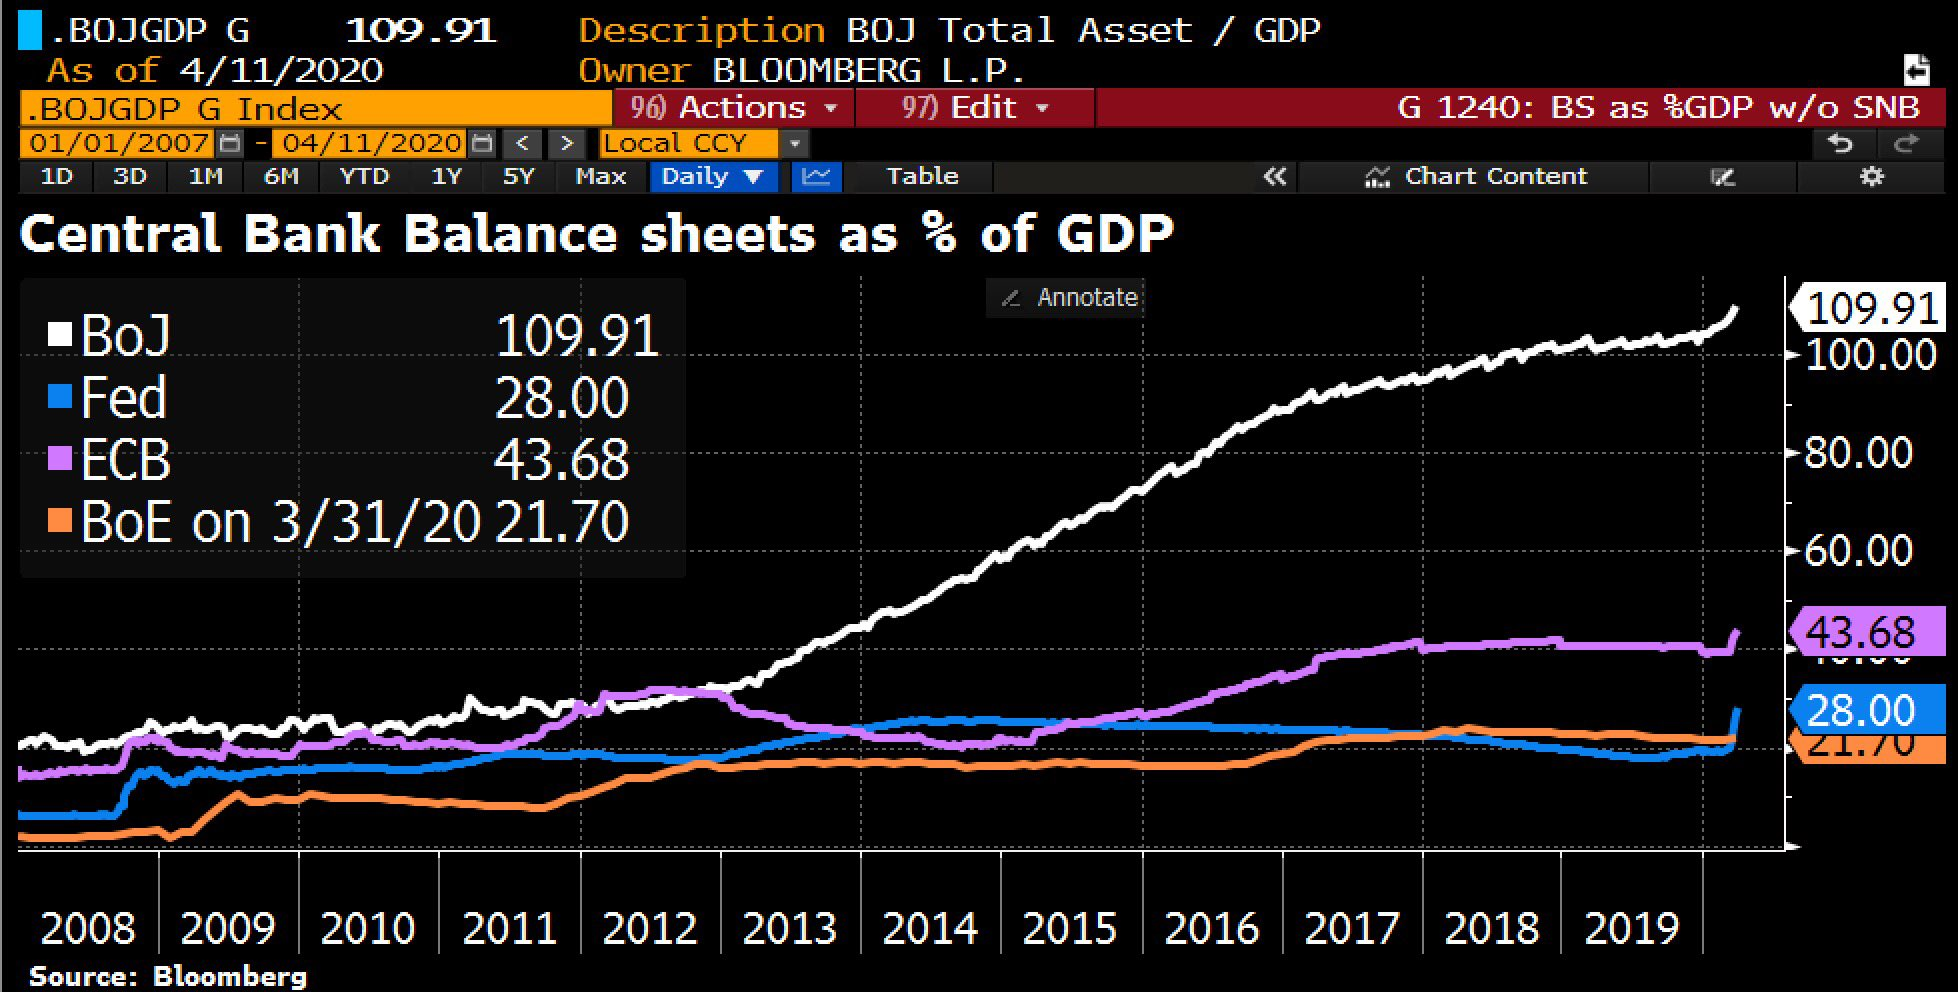 "Holger Zschaepitz a Twitter: ""Global balance sheet expansion of Central  Banks accelerates w/ #BoJ's total assets now a record 110% of GDP, #Fed's balance  sheet now a record 28% of GDP, #ECB's"